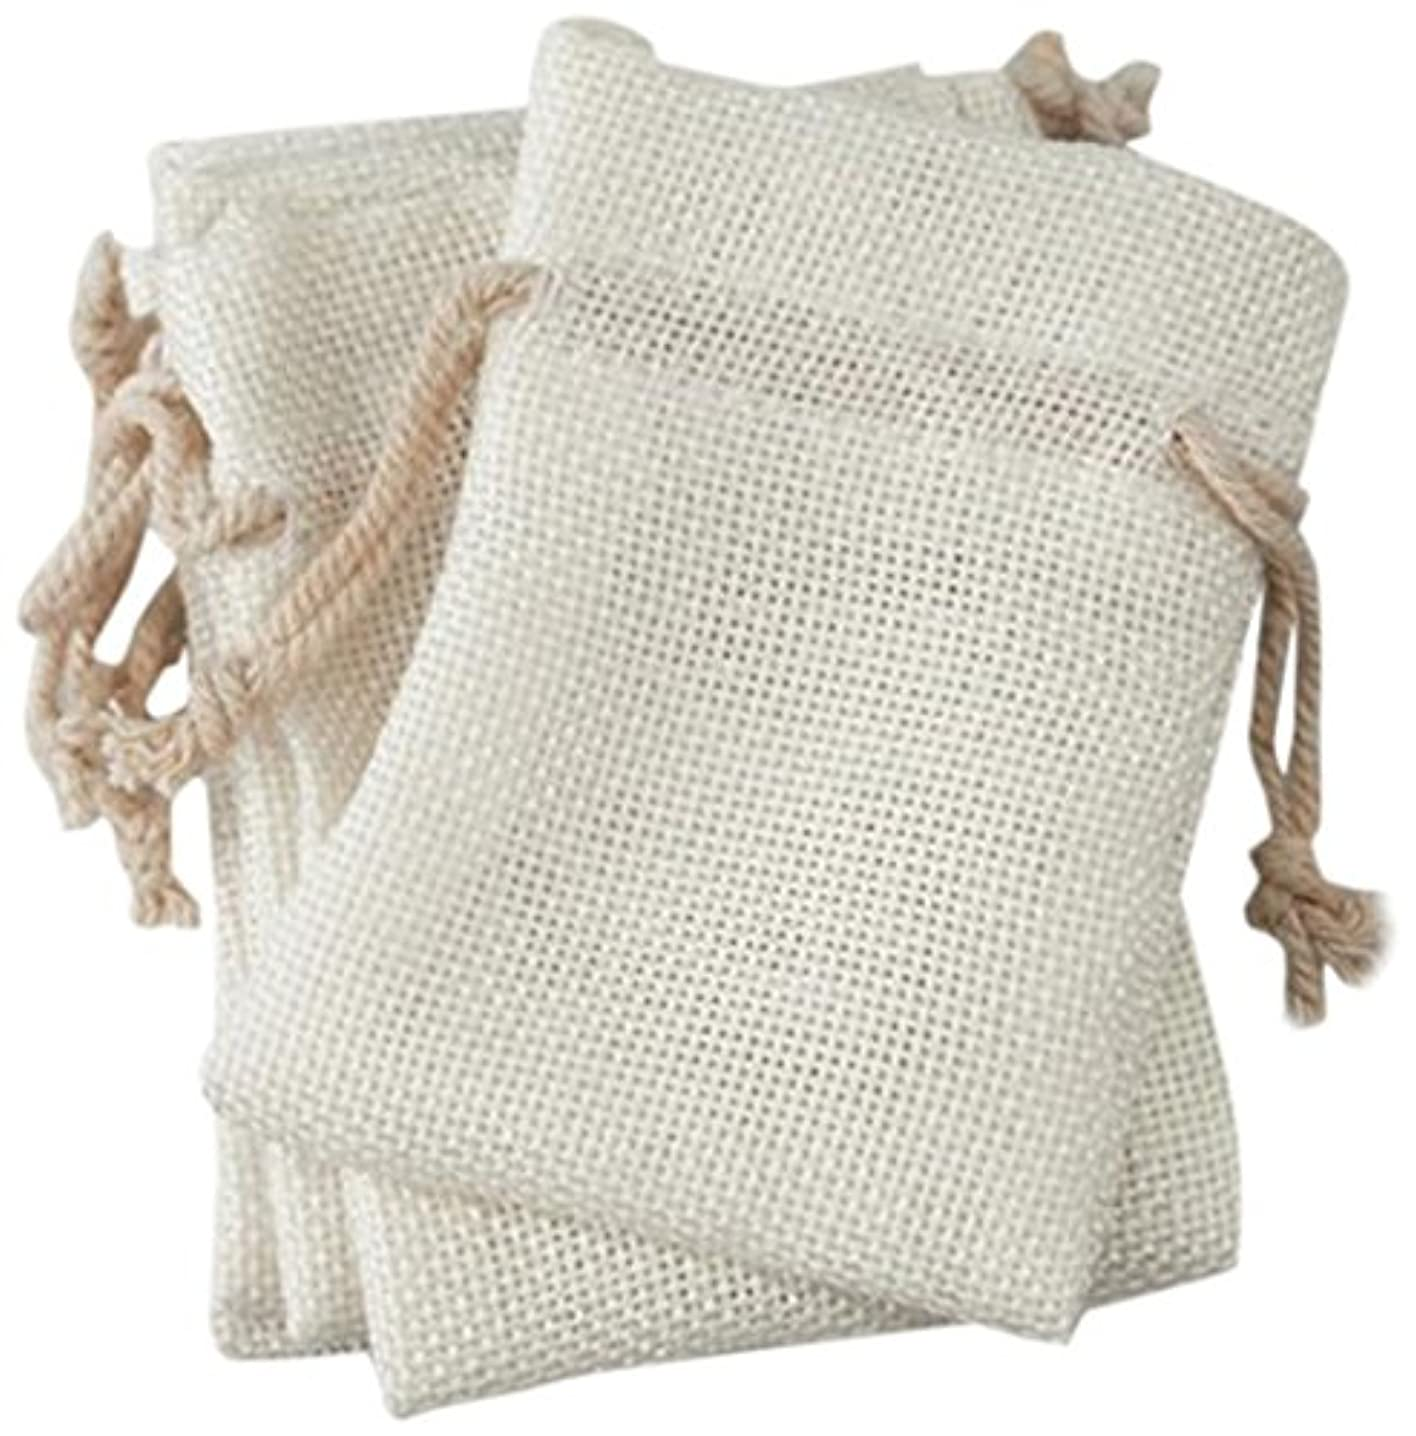 Firefly Imports Homeford Faux Burlap Pouches with Cotton Drawstrings, White, 3 by 4-Inch